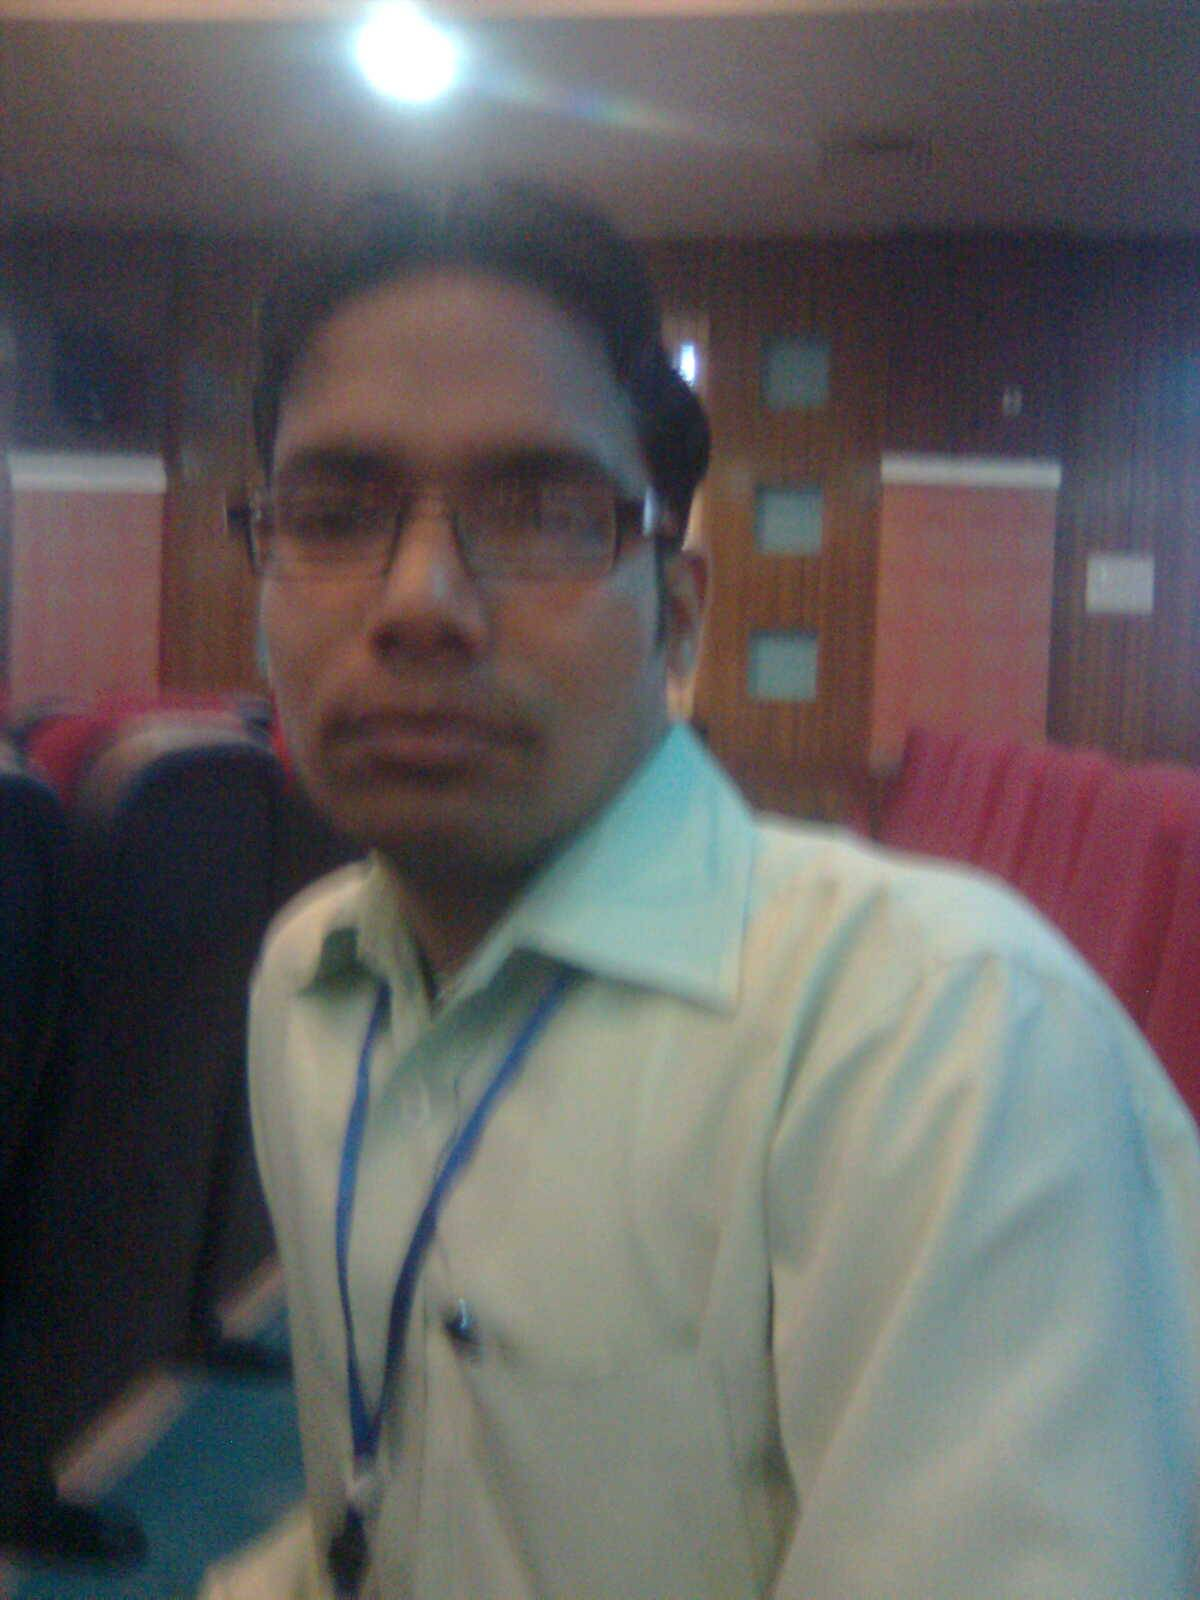 At IEEE new Delhi conference